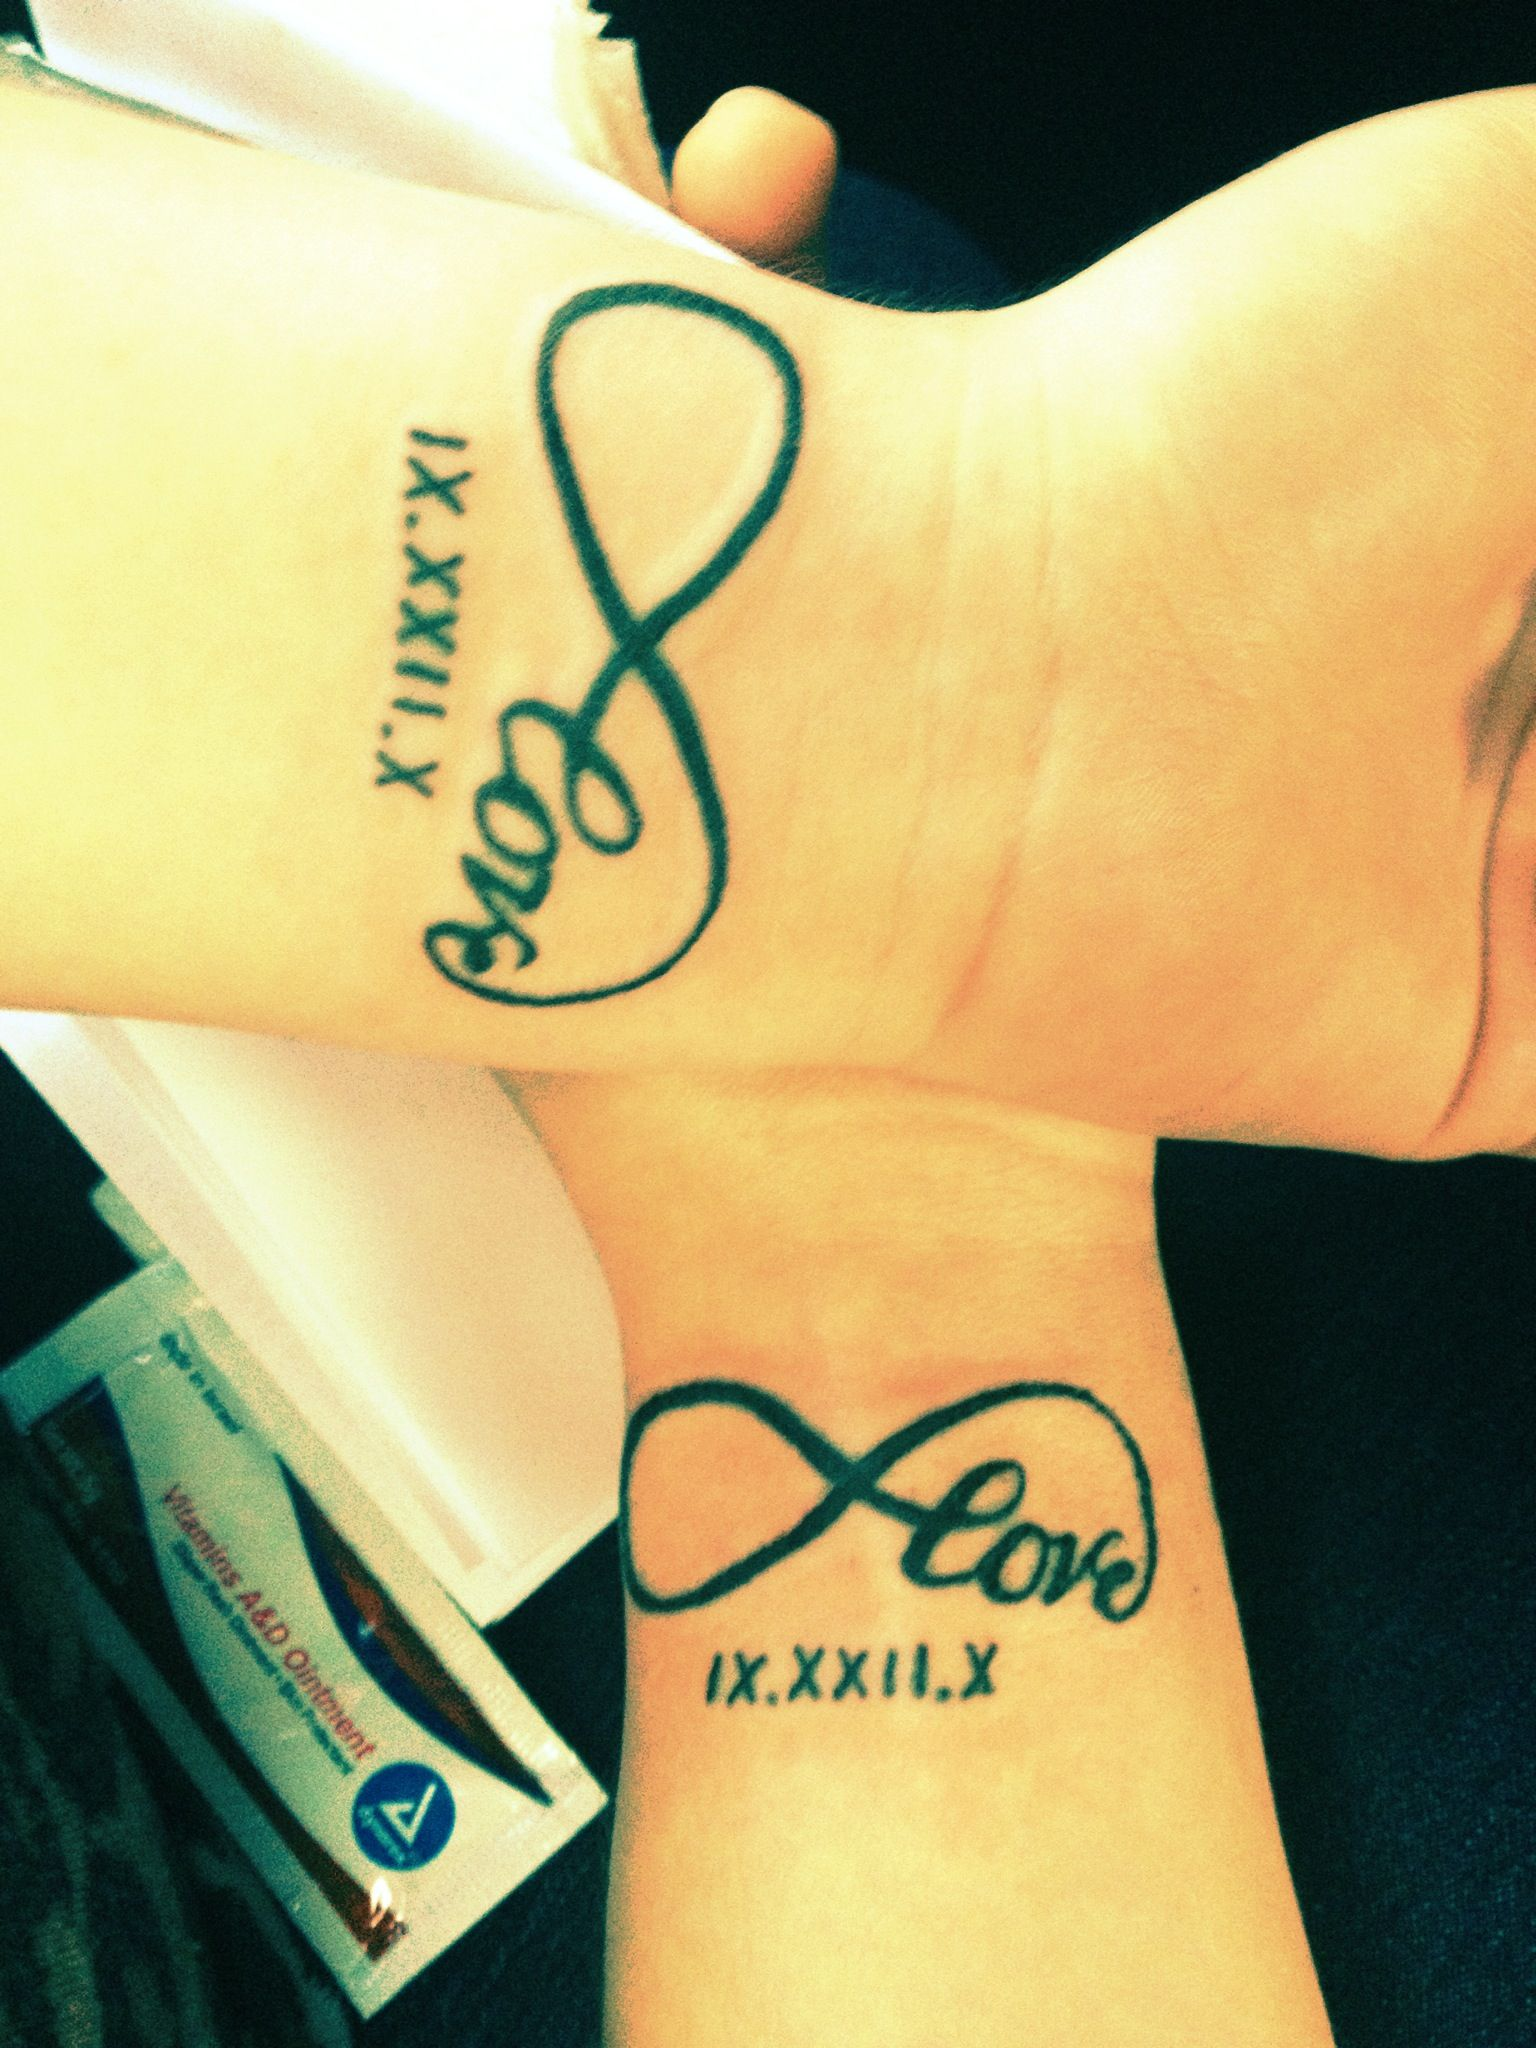 25 Couple Tattoos Ideas Gallery Tattoo Ideas Couple Tattoos